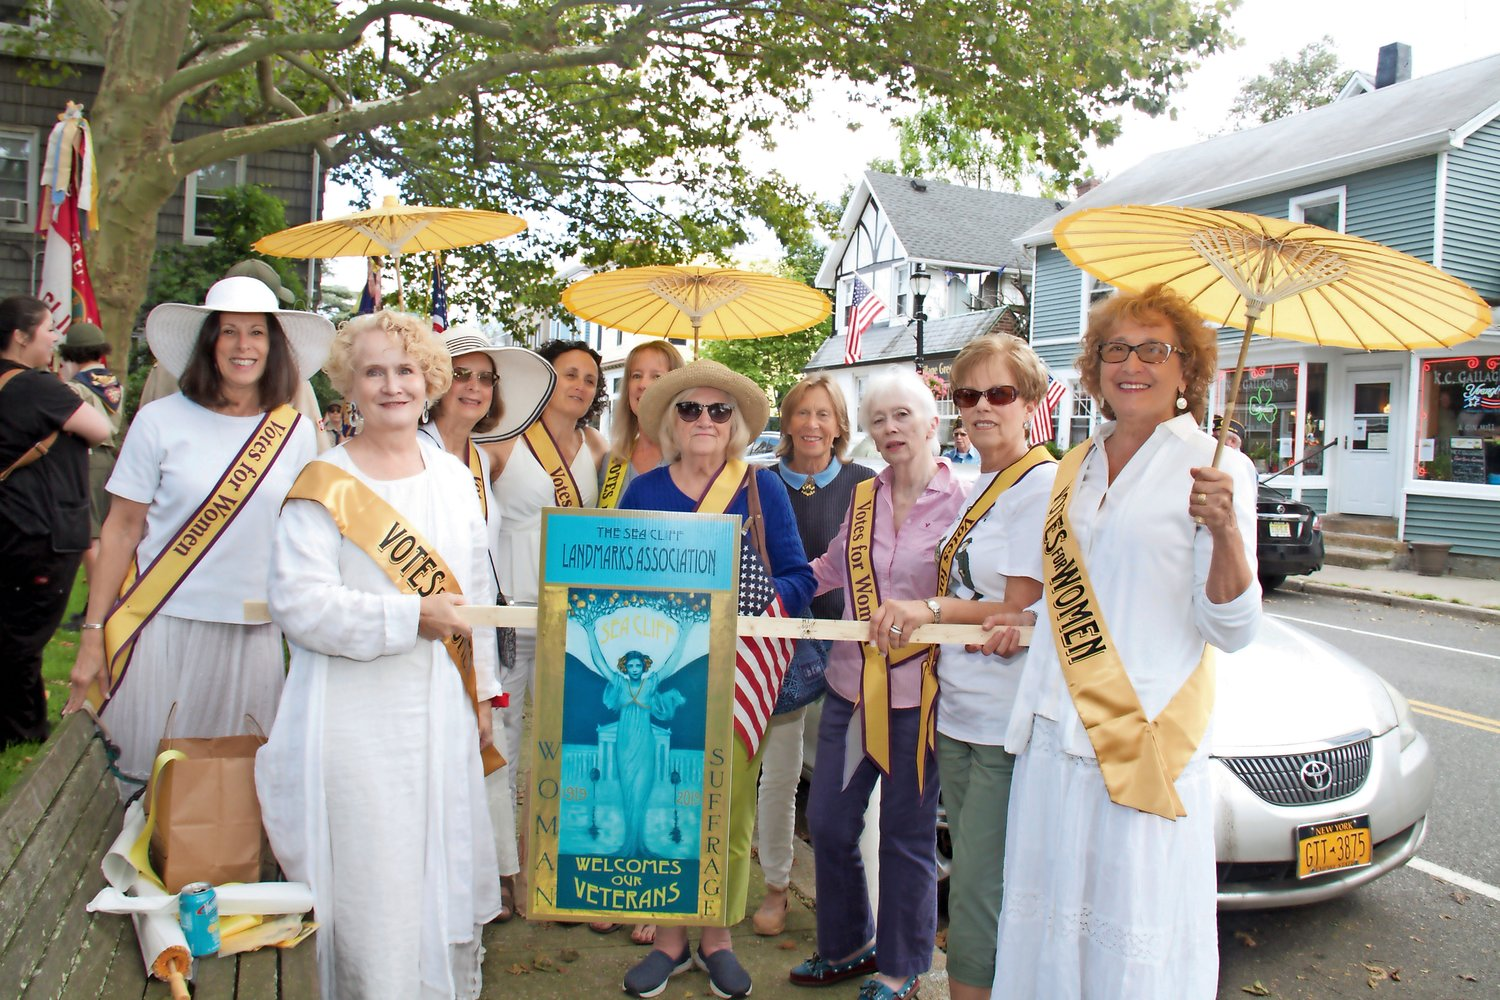 Members of the Sea Cliff Landmarks Association represented women's suffrage.